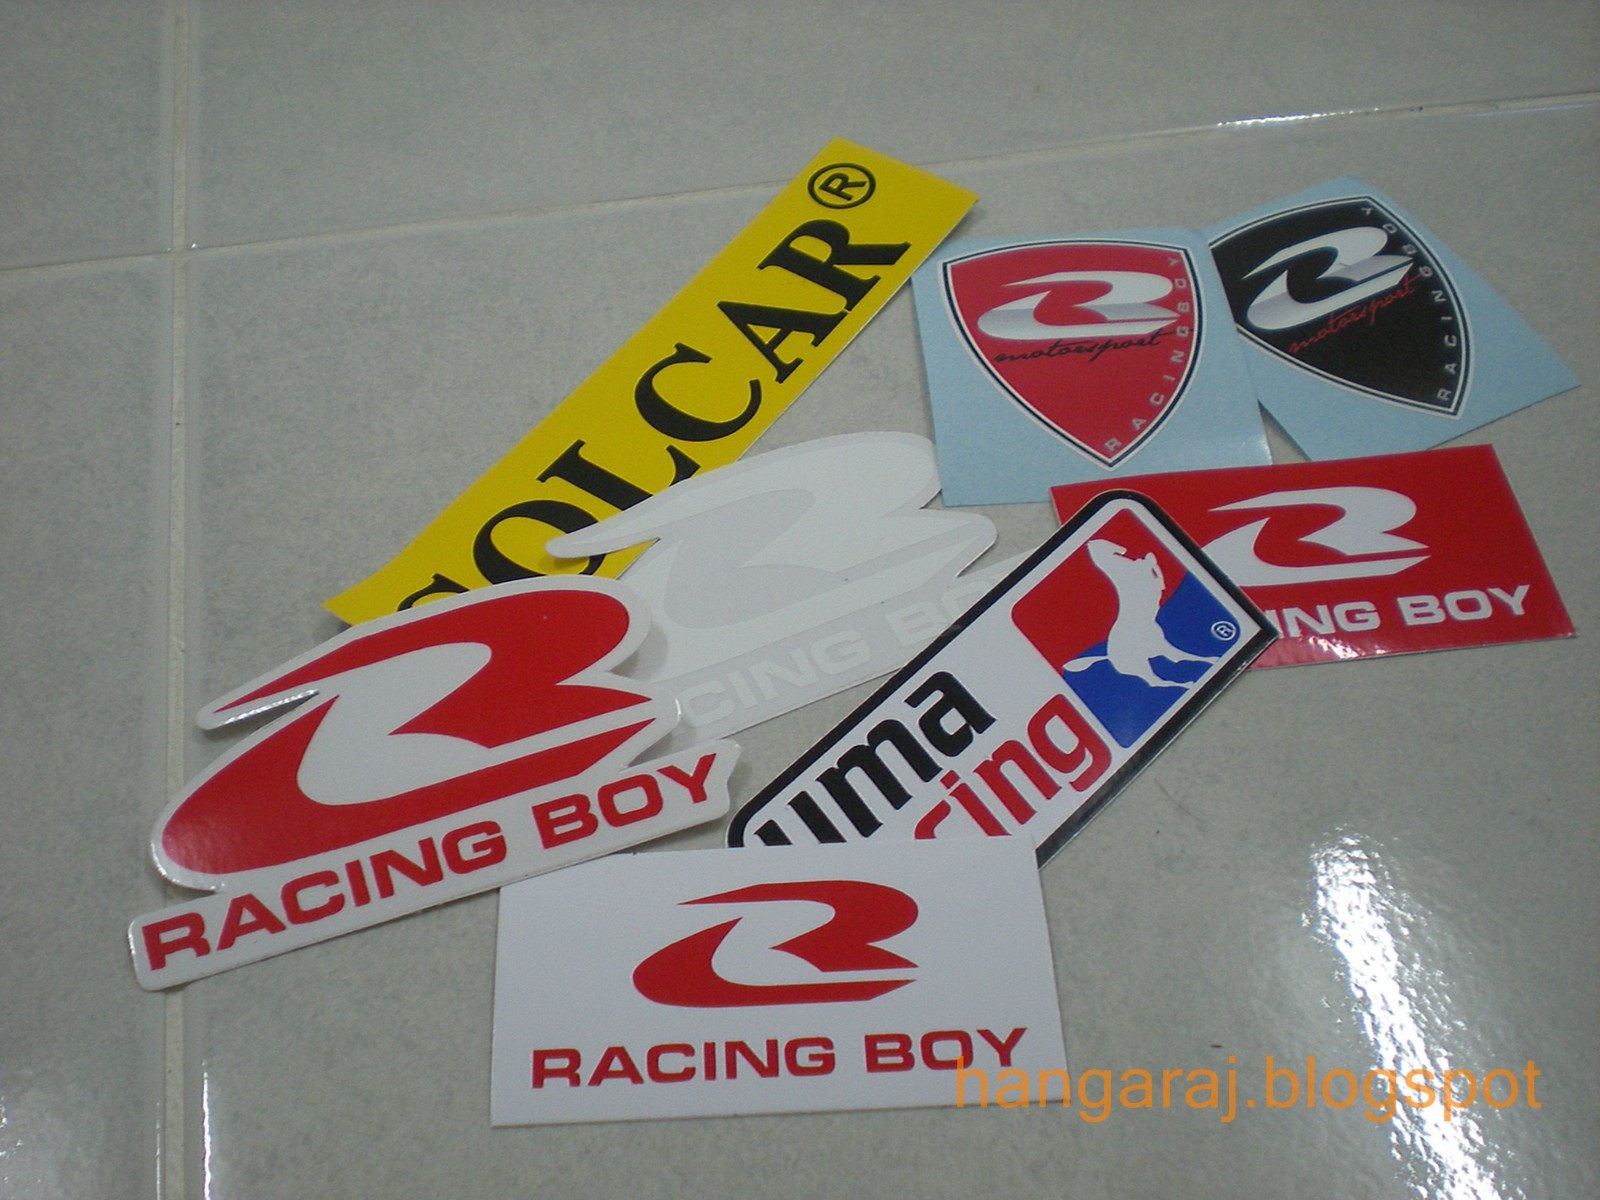 Thank you racing boy for some free sticker gonna stickerbomb my moped